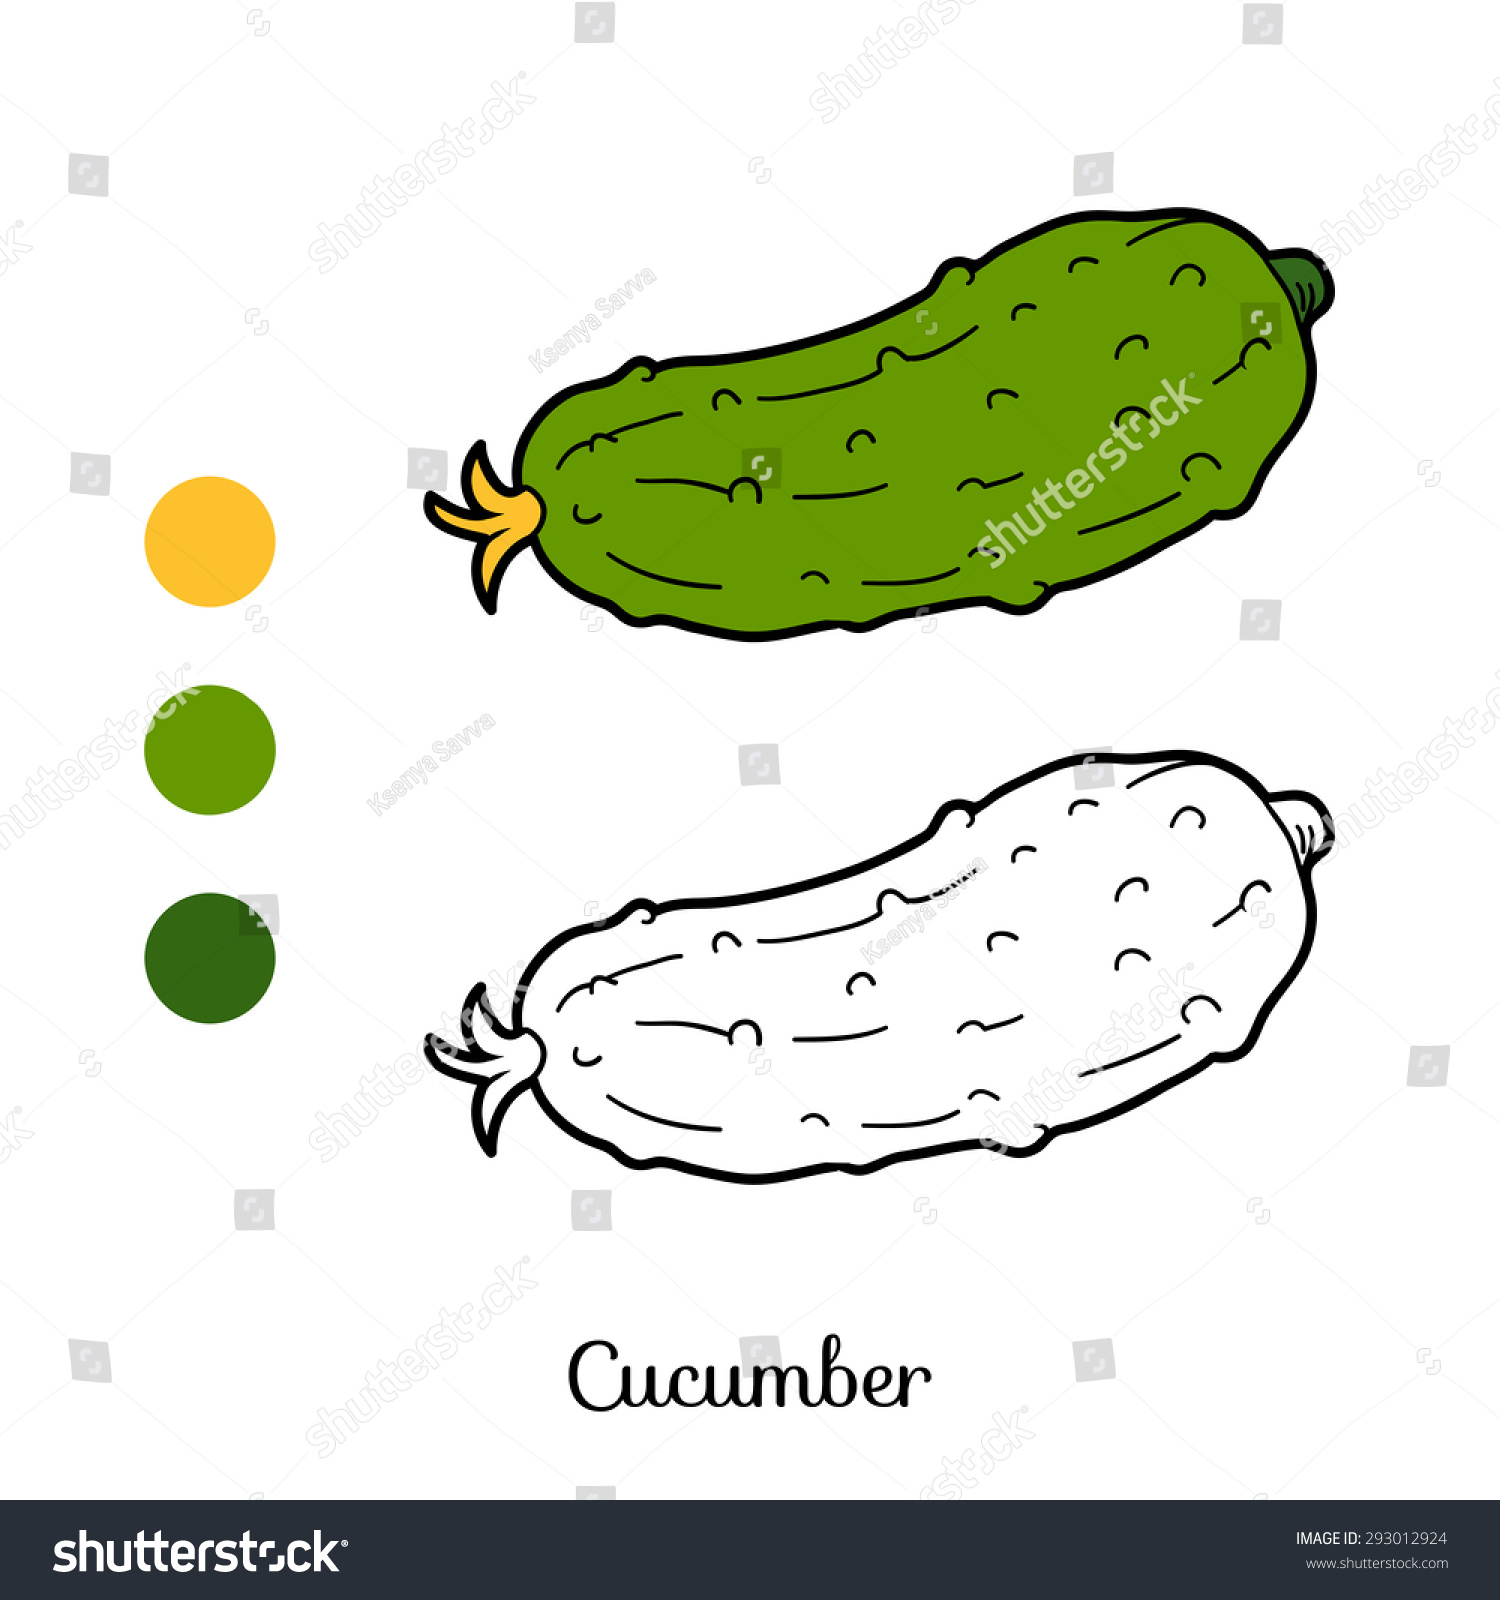 Coloring Book Fruits Vegetables Cucumber Stock Vector (Royalty Free ...